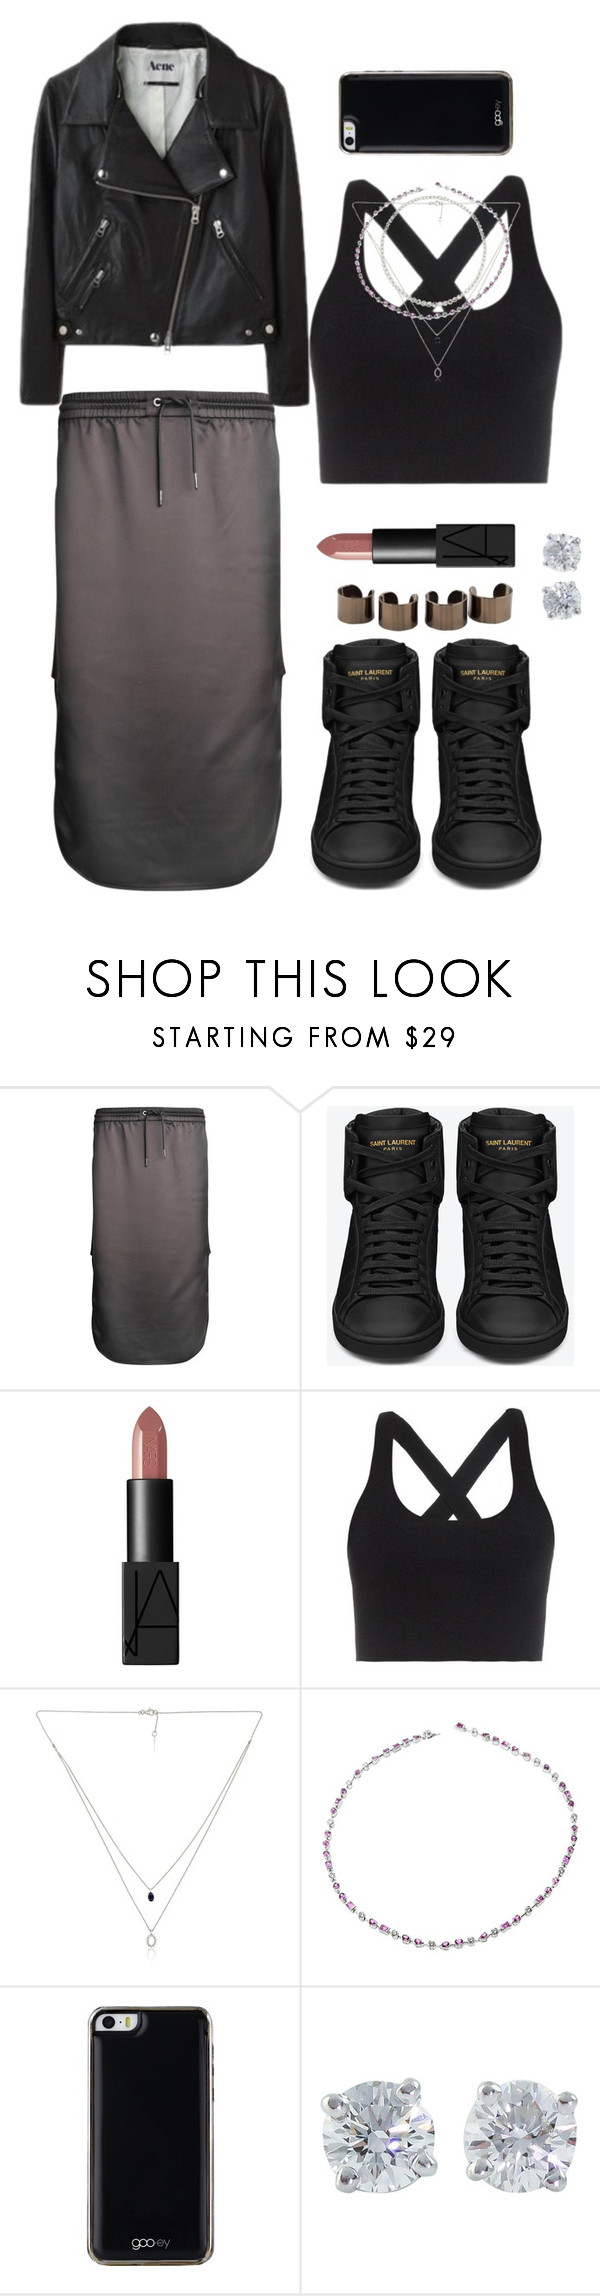 """""""Untitled #545"""" by heybrub ❤ liked on Polyvore featuring T By Alexander Wang, Yves Saint Laurent, NARS Cosmetics, Maison Margiela, Cartier, Gooey, Tiffany & Co., women's clothing, women's fashion and women"""